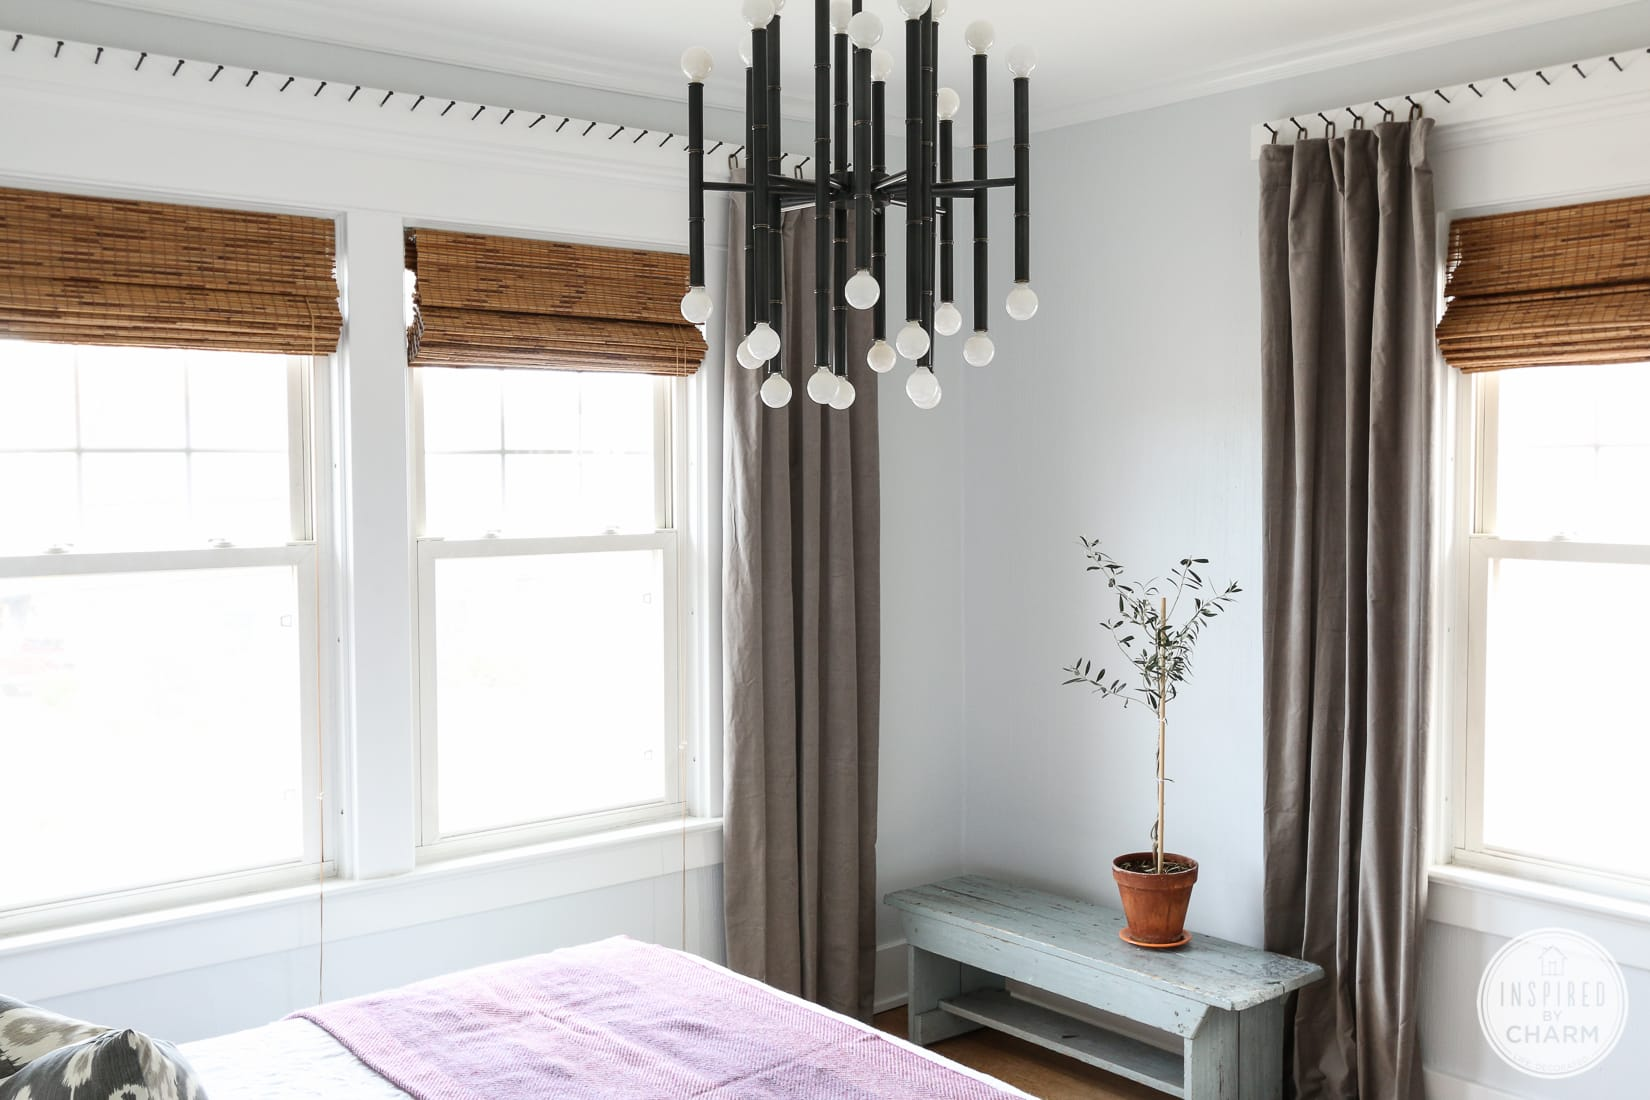 Curtains, Blinds, and that Rug   Inspired by Charm